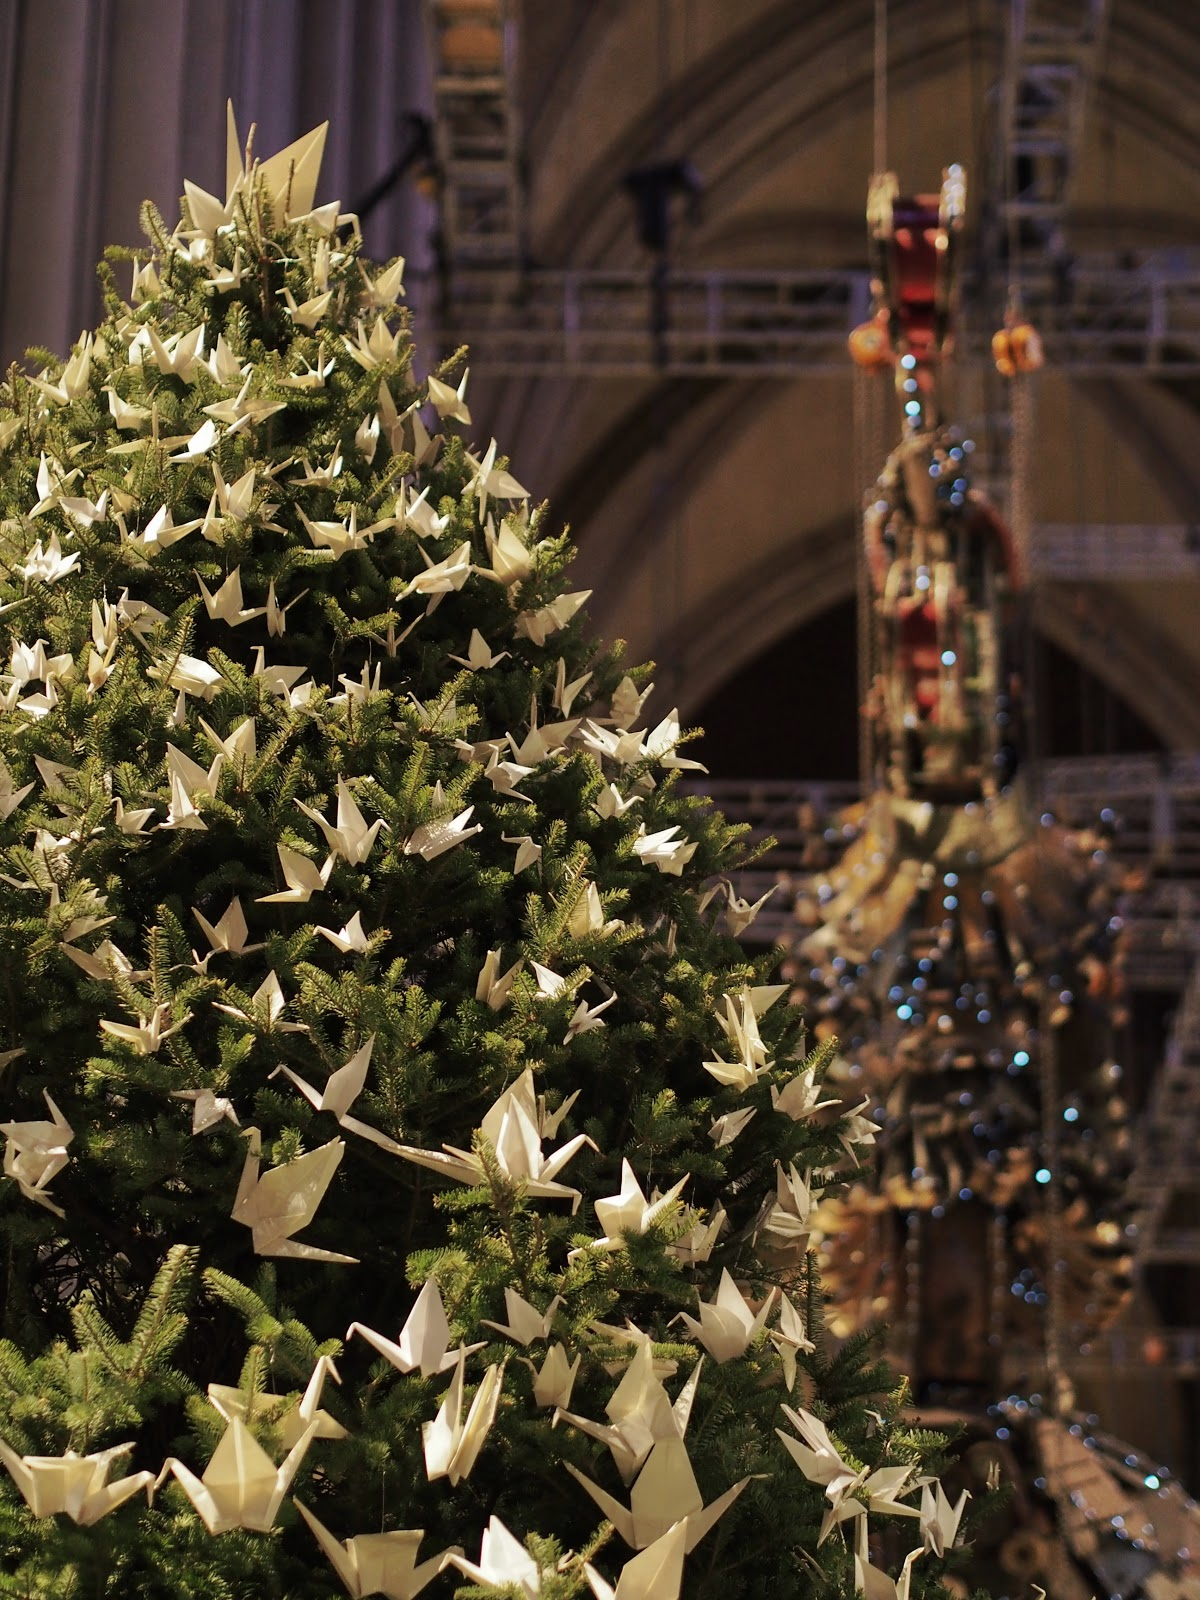 Peace Tree #peacetree #stjohnthedivinecathedral #nyc #holidaysinNYC #christmastree ©2014 Nancy Lundebjerg